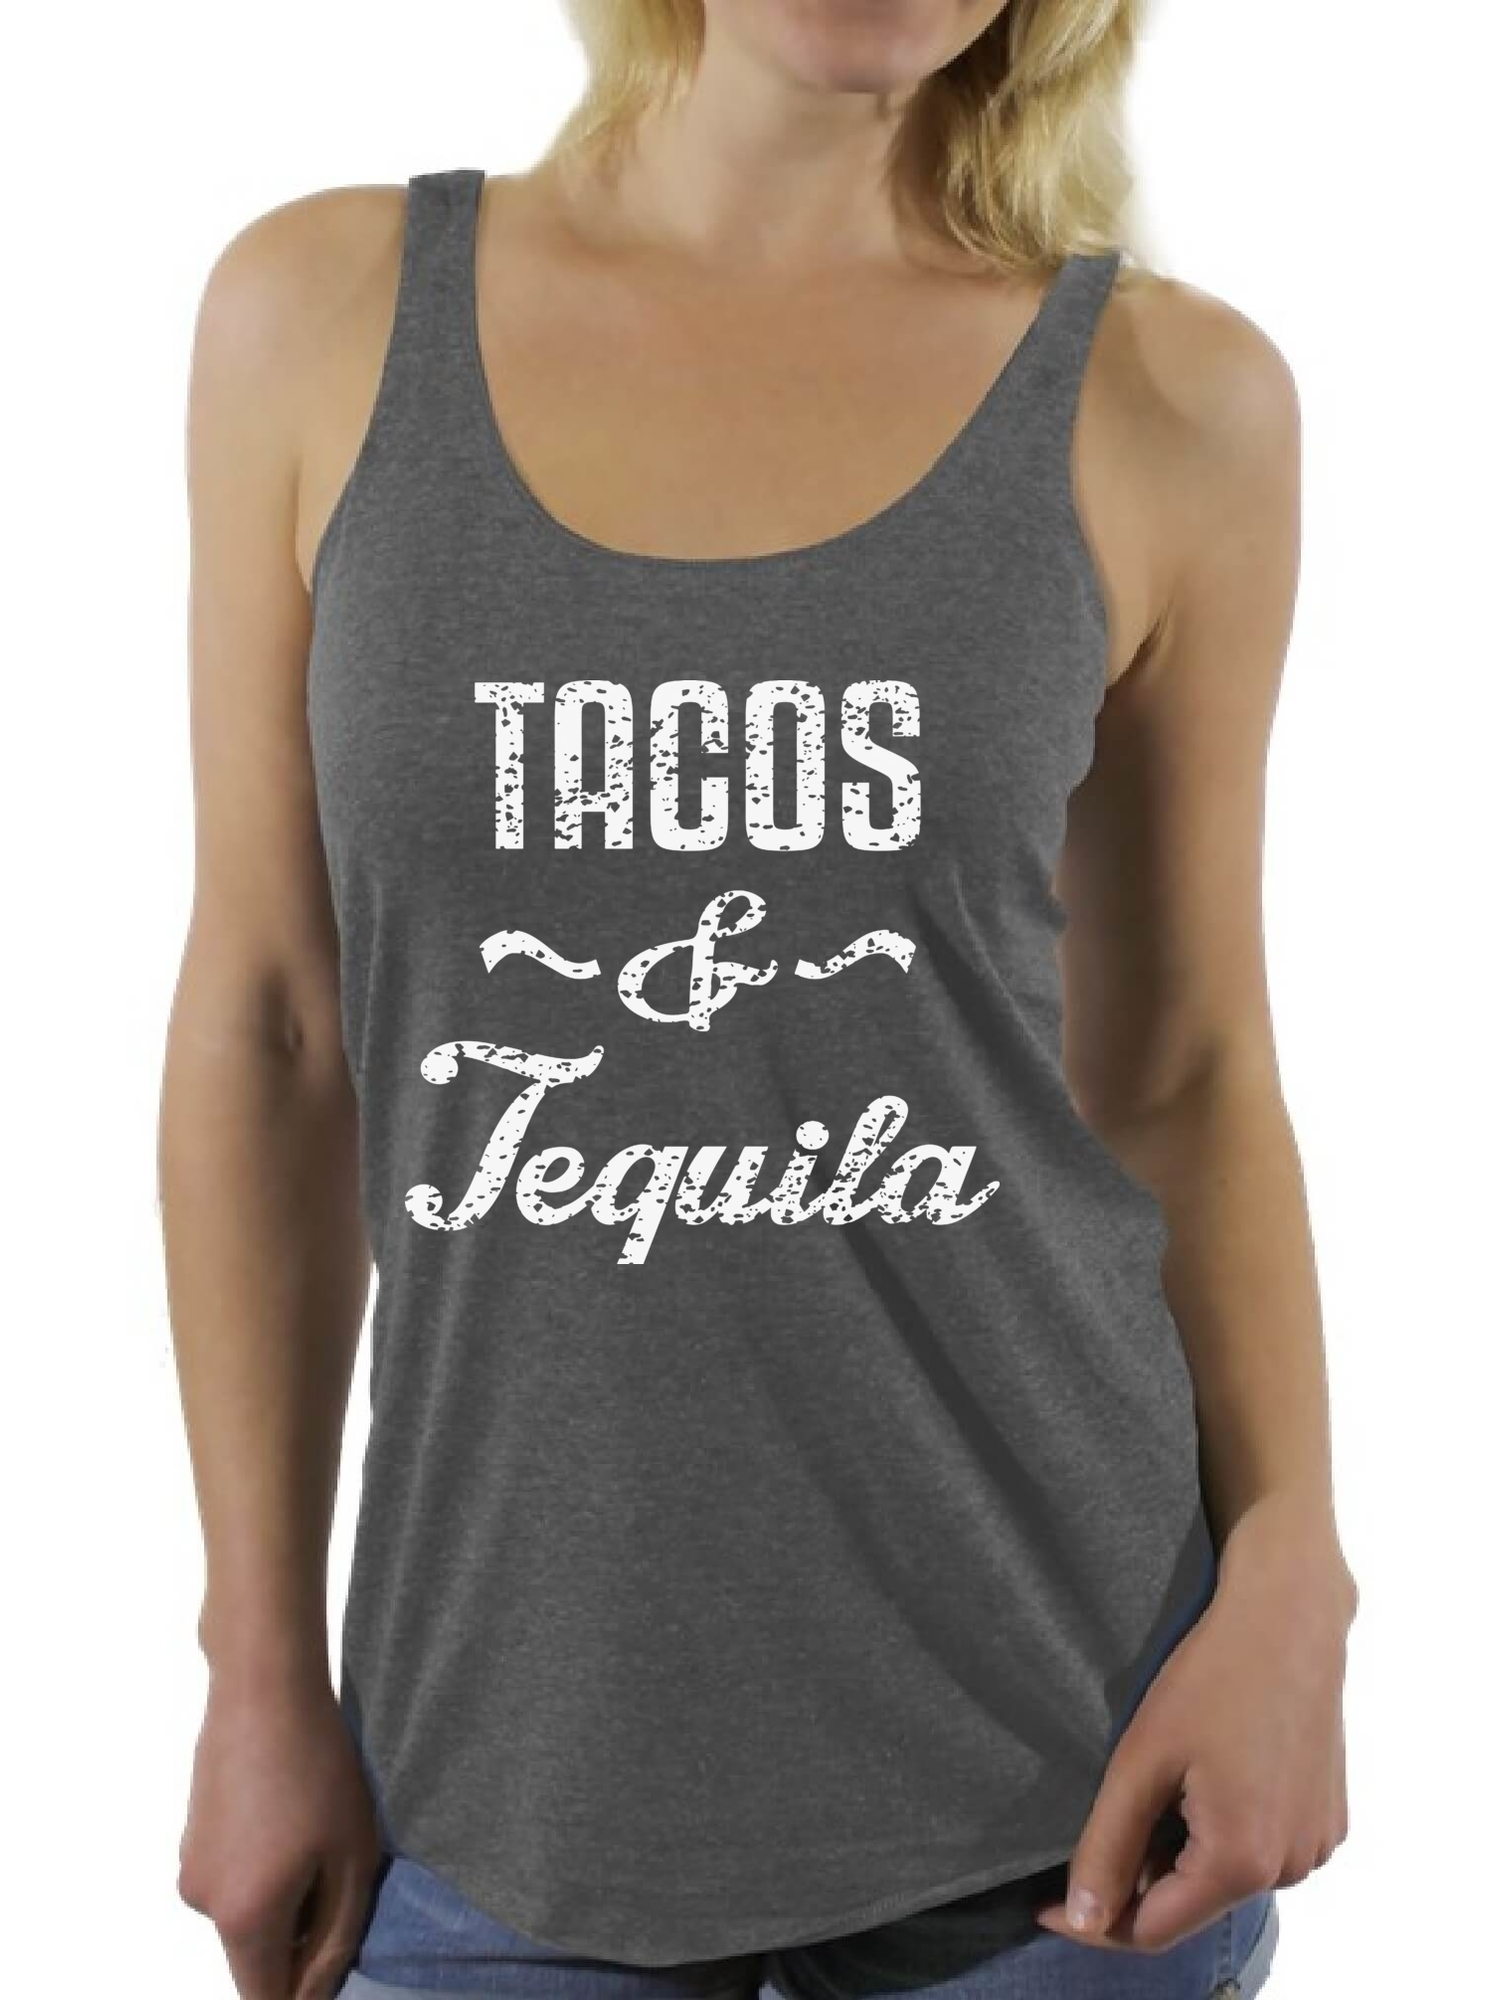 Awkward Styles Women's Tacos & Tequila Graphic Racerback Tank Tops Taco Mexican Drinking Party Gift